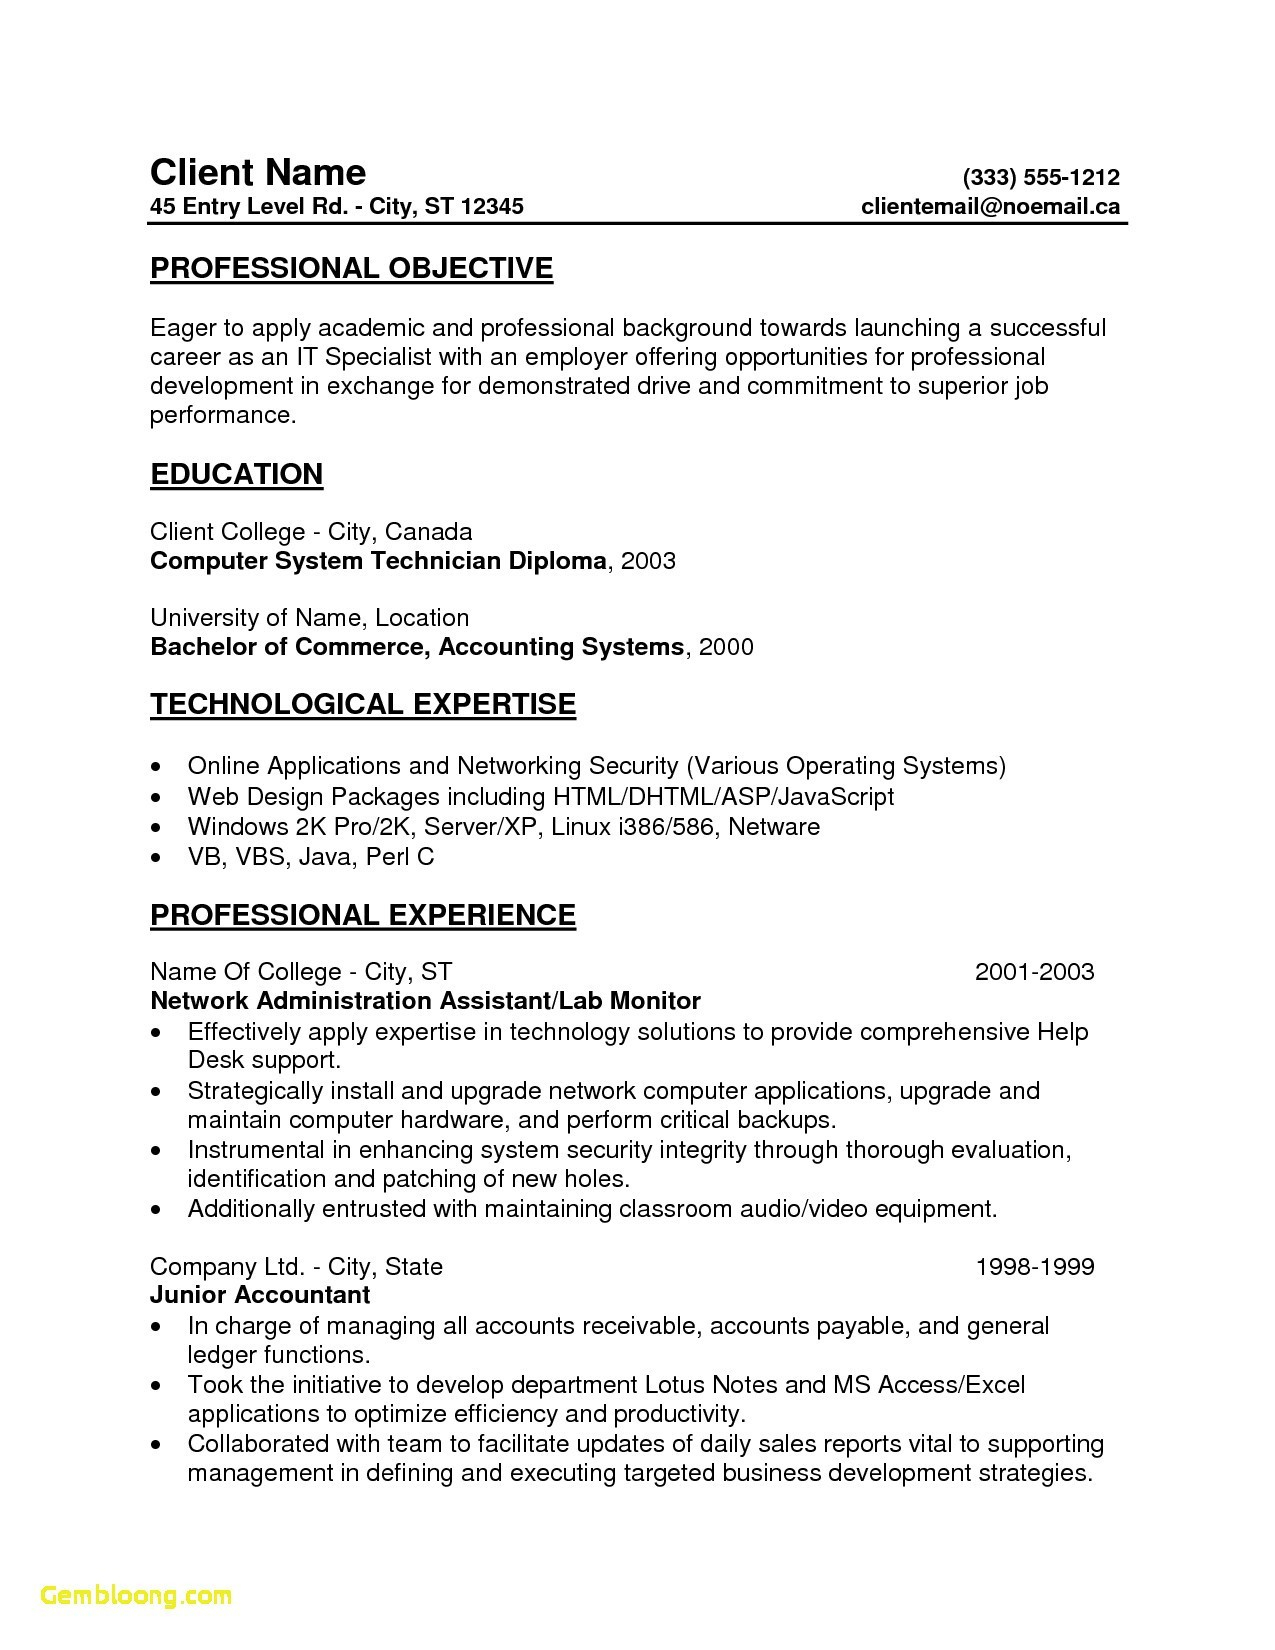 Desktop Support Resume Template - Resume Website Template Best Unique Resume Website Templates